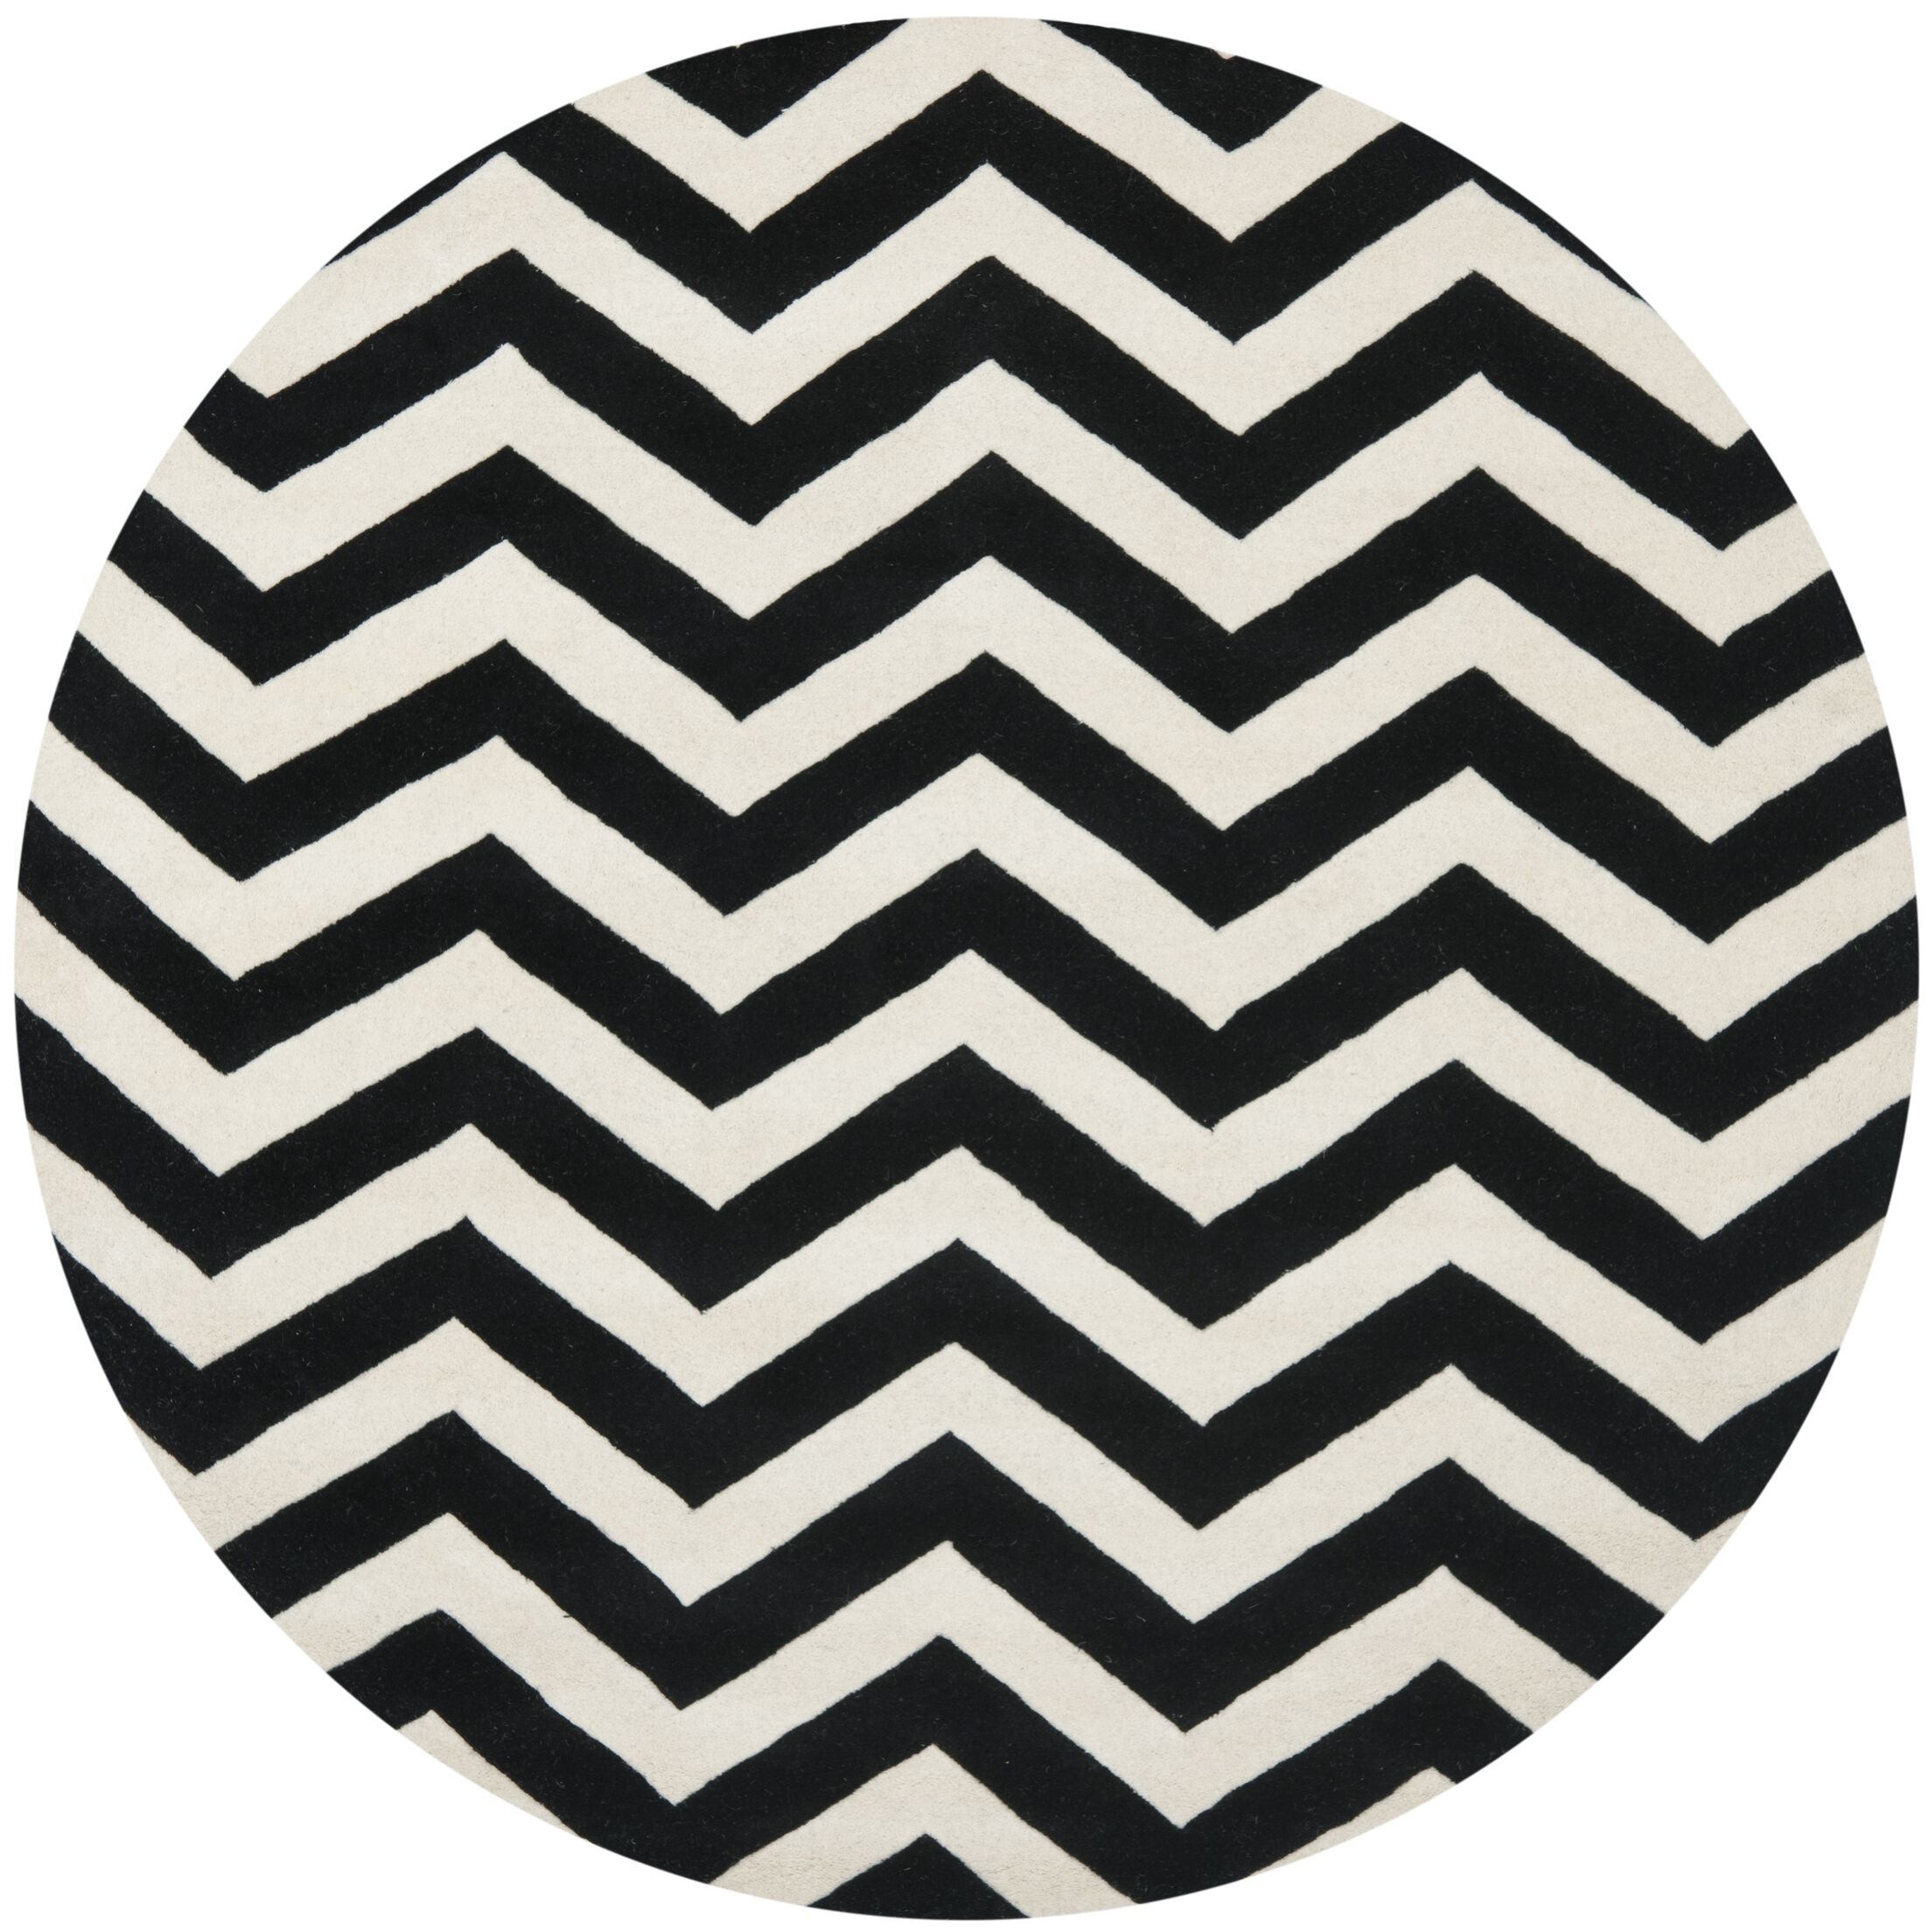 One-of-Kind Wilkin Chevron Hand-Tufted Wool Ivory/Black Area Rug Rug Size: Round 7'